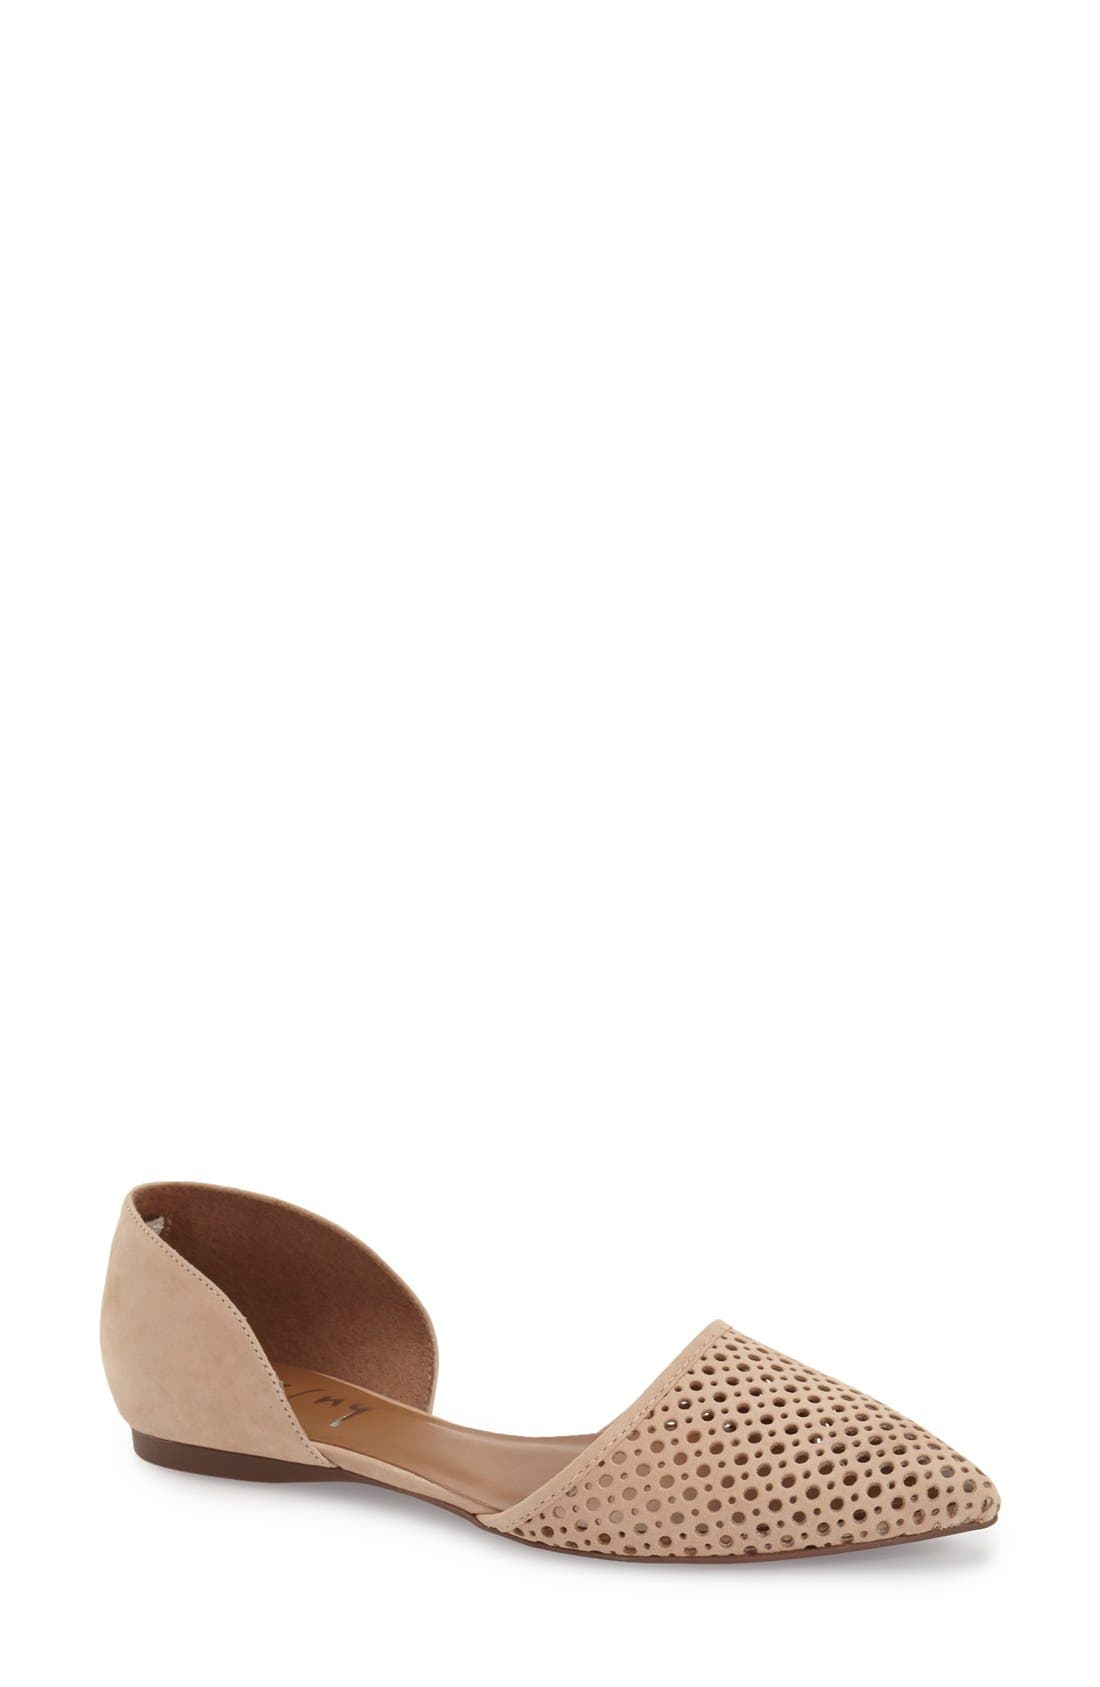 Main Image - French Sole 'Quotient' d'Orsay Flat (Women)